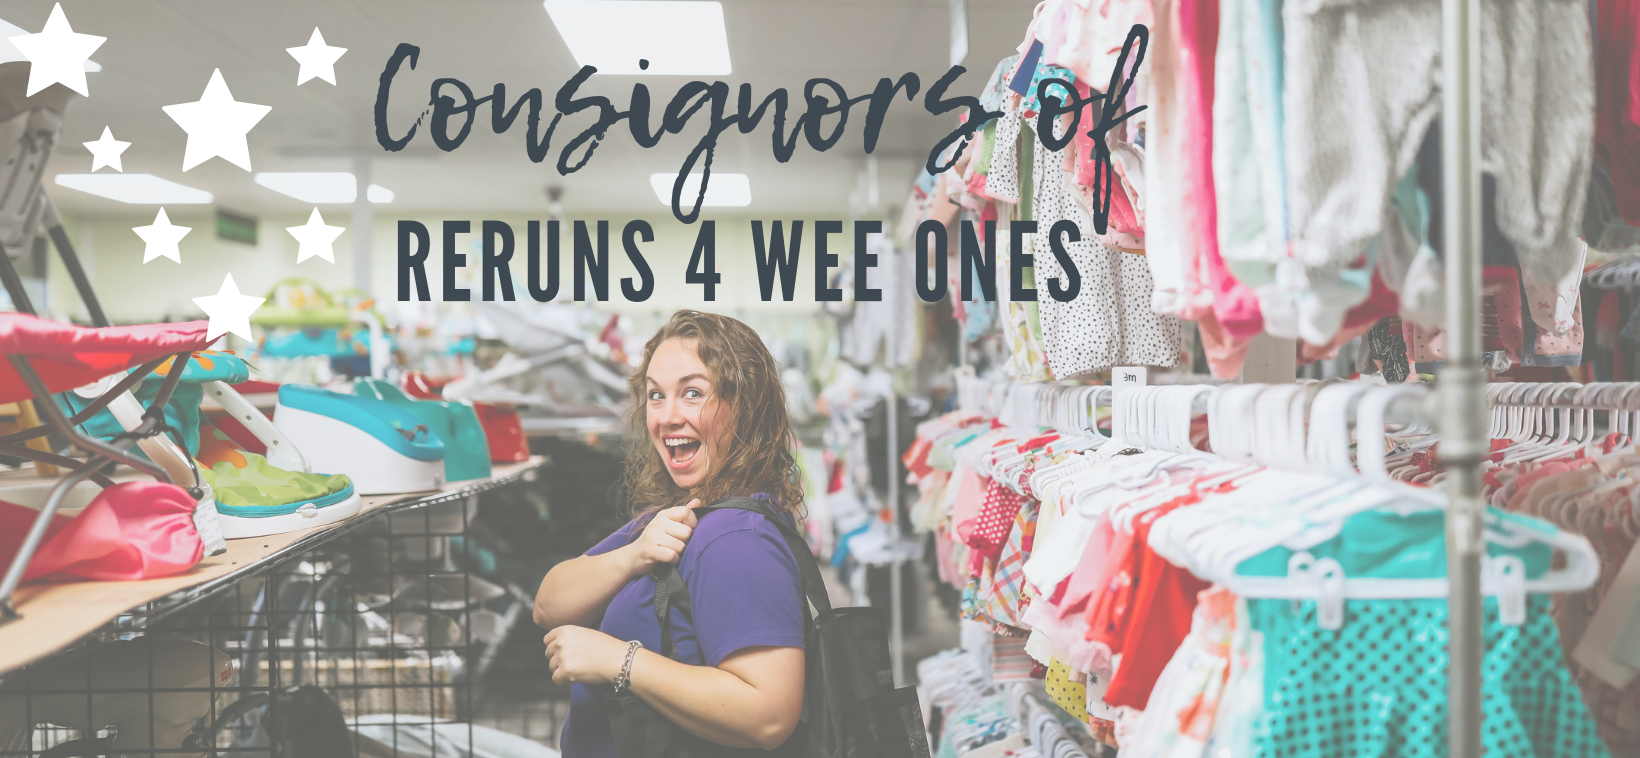 Consignors!!! - Have you joined our exclusive Facebook group yet?! It's a place we're announcing special events, discounts, how-to tips, and more.